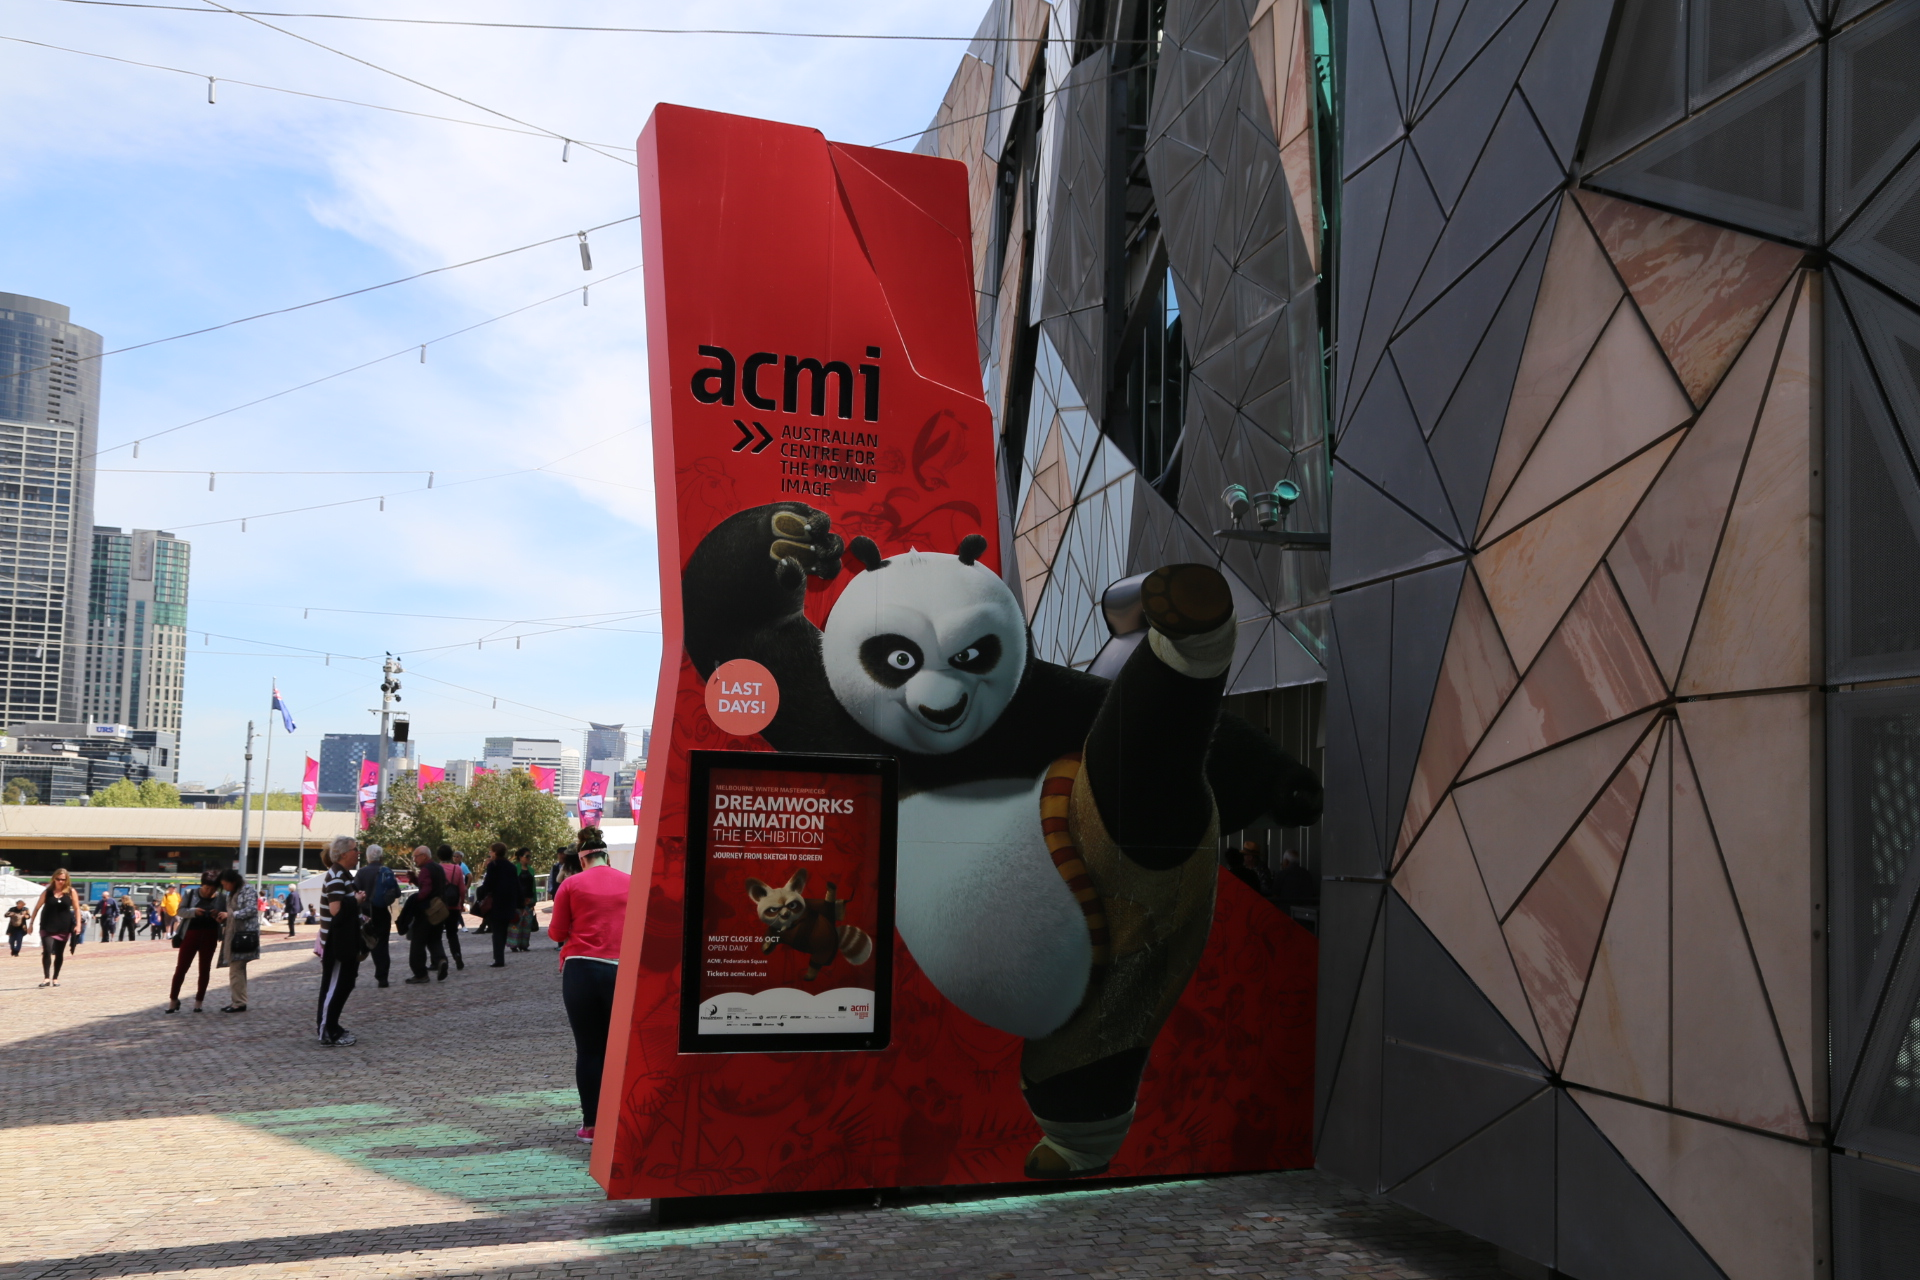 ACMI Melbourne Dreamworks Animation Exhibition